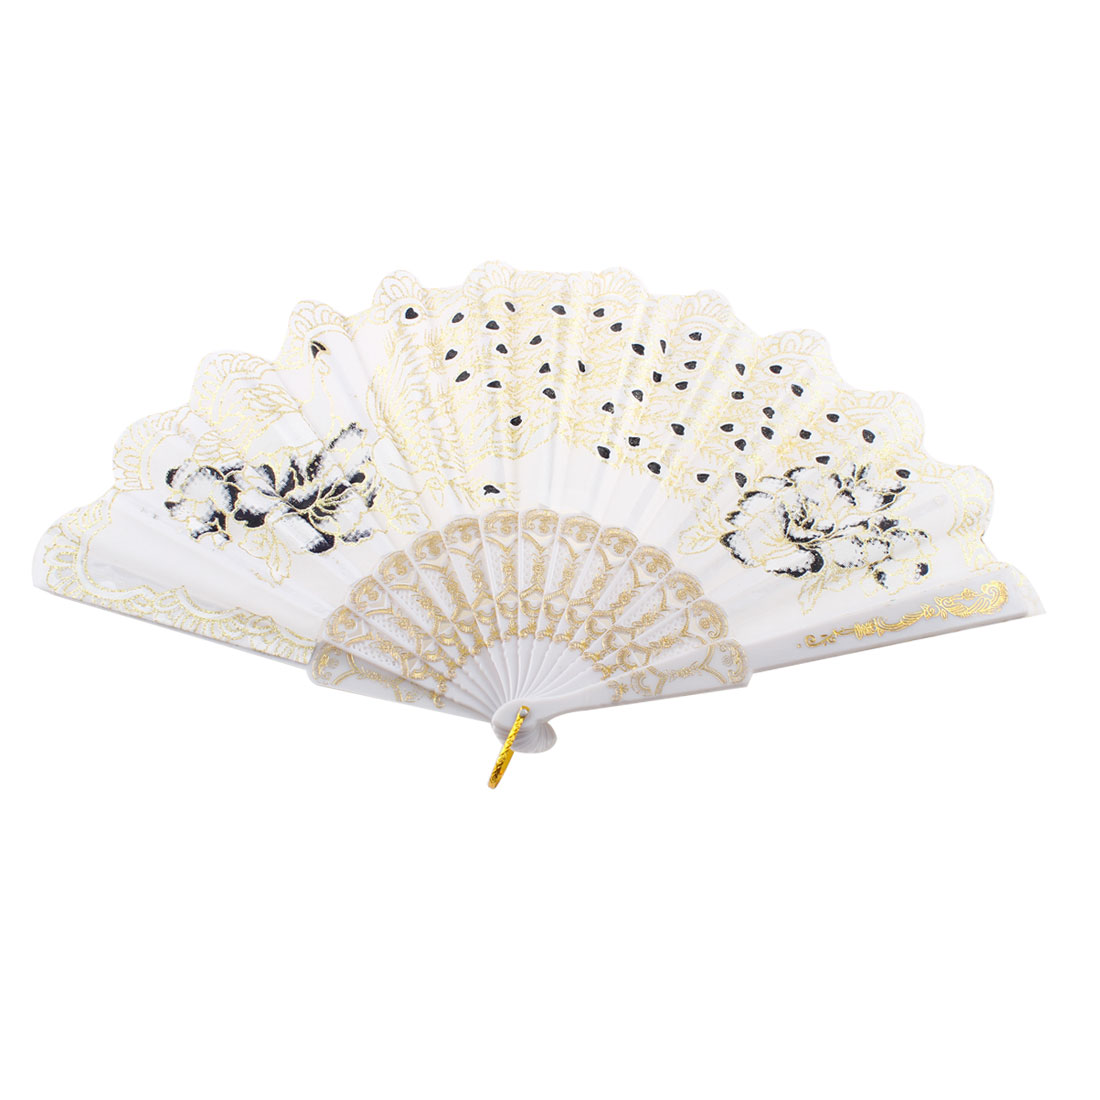 Glittery Powder Accent Peony Peacock Print Foldable Summer Hand Fan White